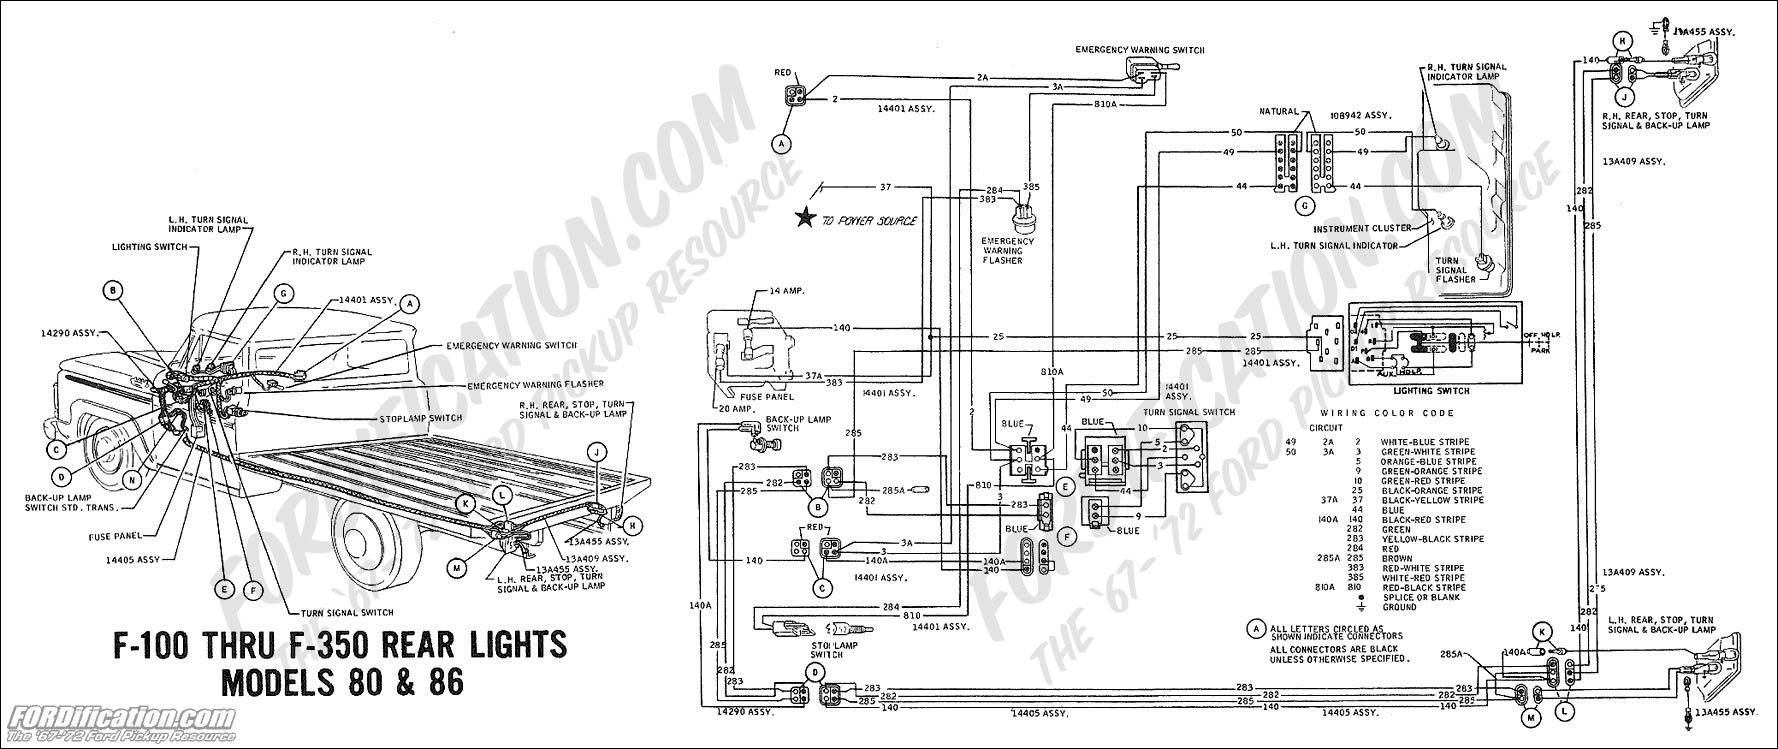 wiring_69rearlights mdls80 86 1994 f700 wiring diagram on 1994 download wirning diagrams 1992 ford f700 wiring diagram at bayanpartner.co